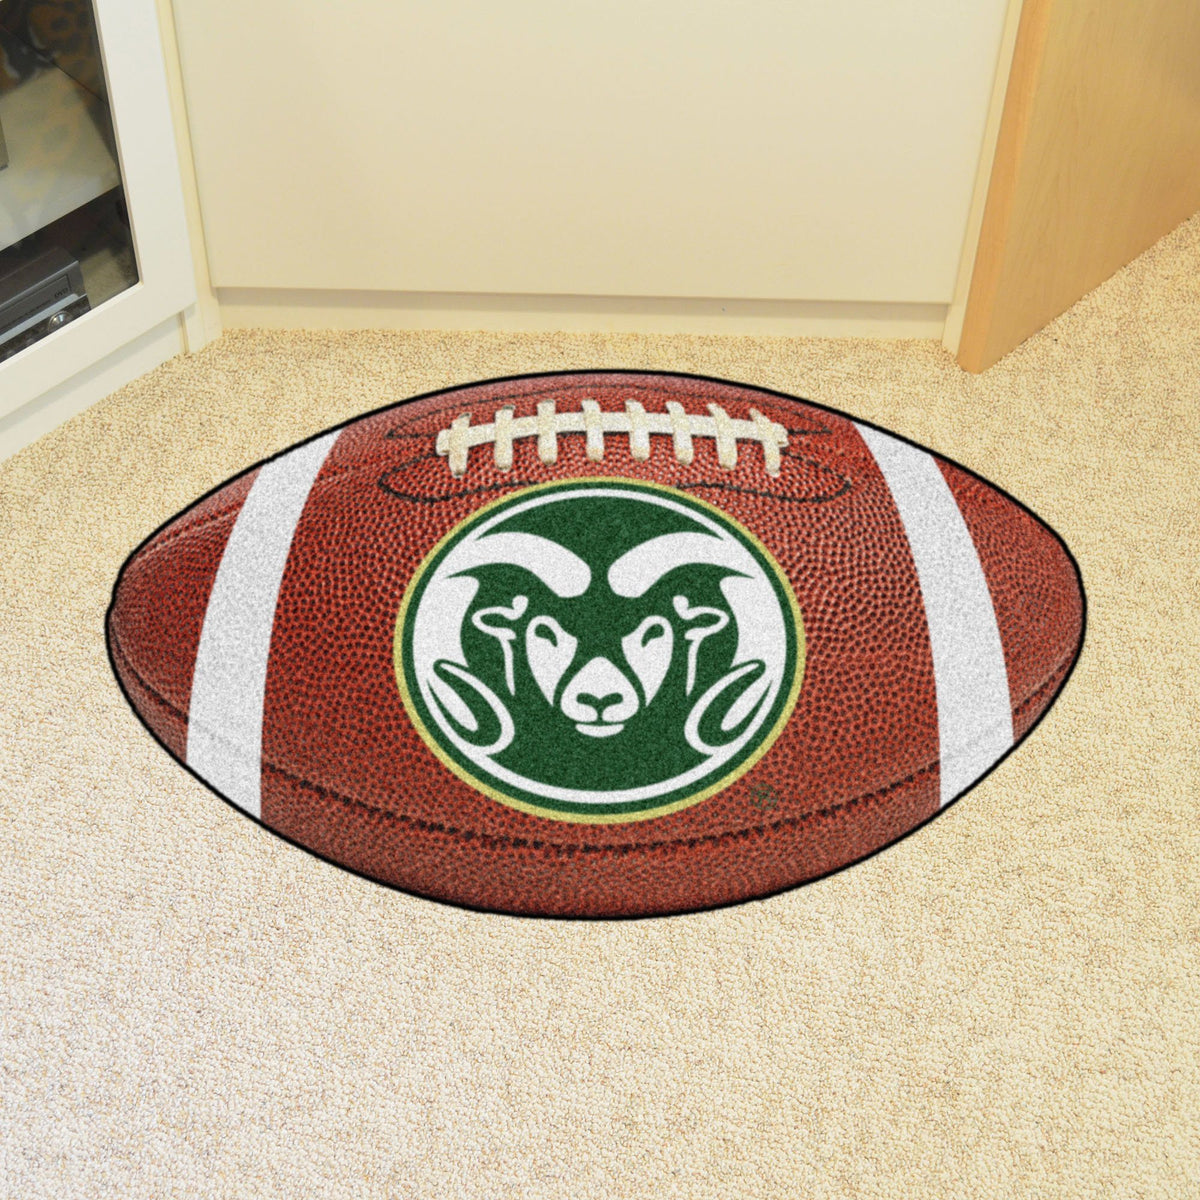 Collegiate - Football Mat: A - K Collegiate Mats, Rectangular Mats, Football Mat, Collegiate, Home Fan Mats Colorado State 2